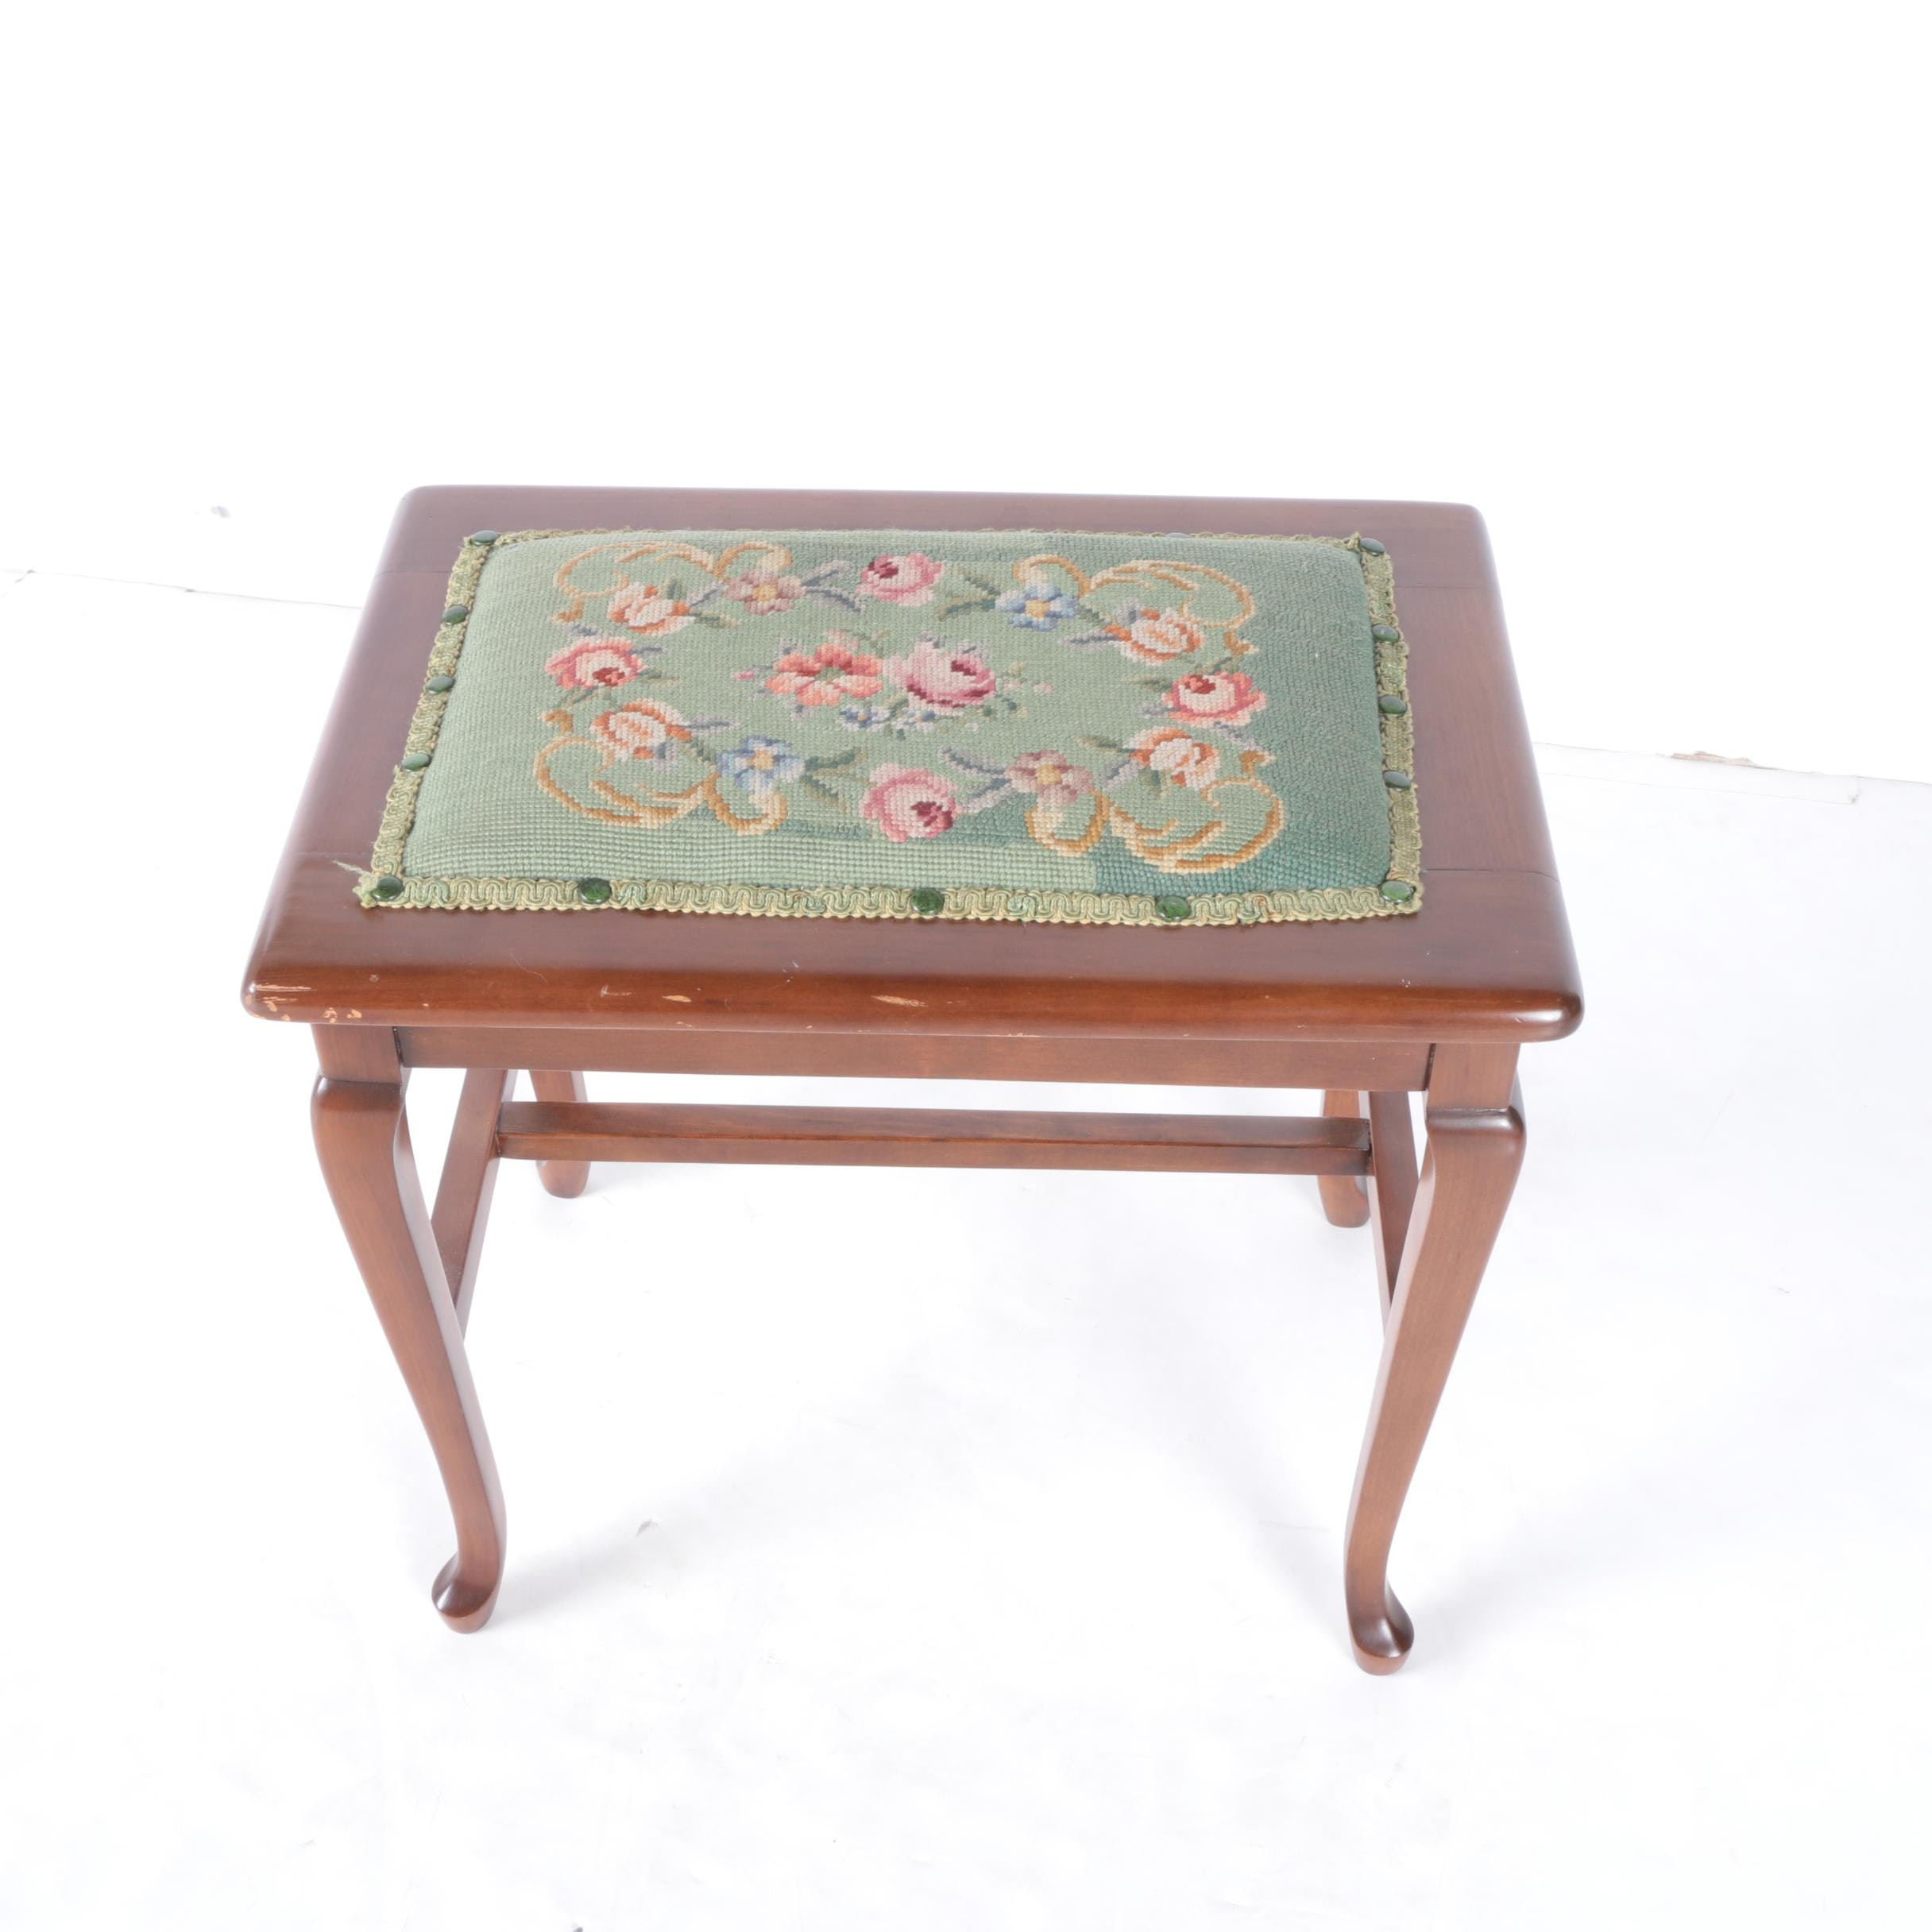 Vintage Queen Anne Style Bench with Needlepoint Upholstery